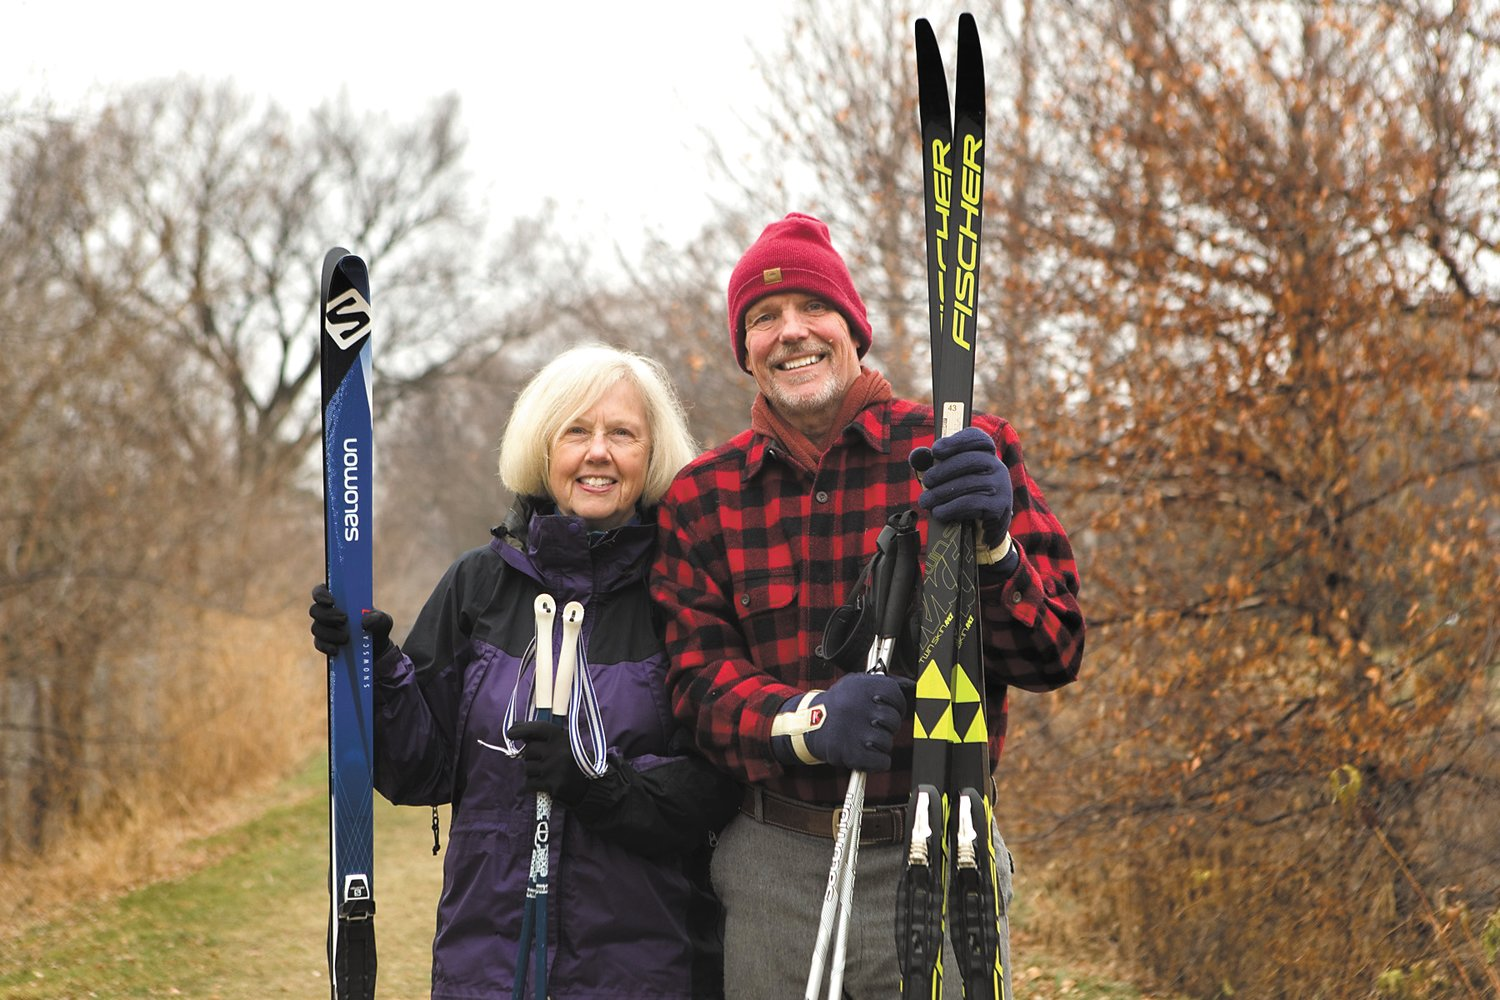 Linda Grieme (left) and Gregg Kelley (right) have been members of the NSSTC for decades. They're drawn to others who love and value silent sports. (Photo by Margie O'Loughlin)